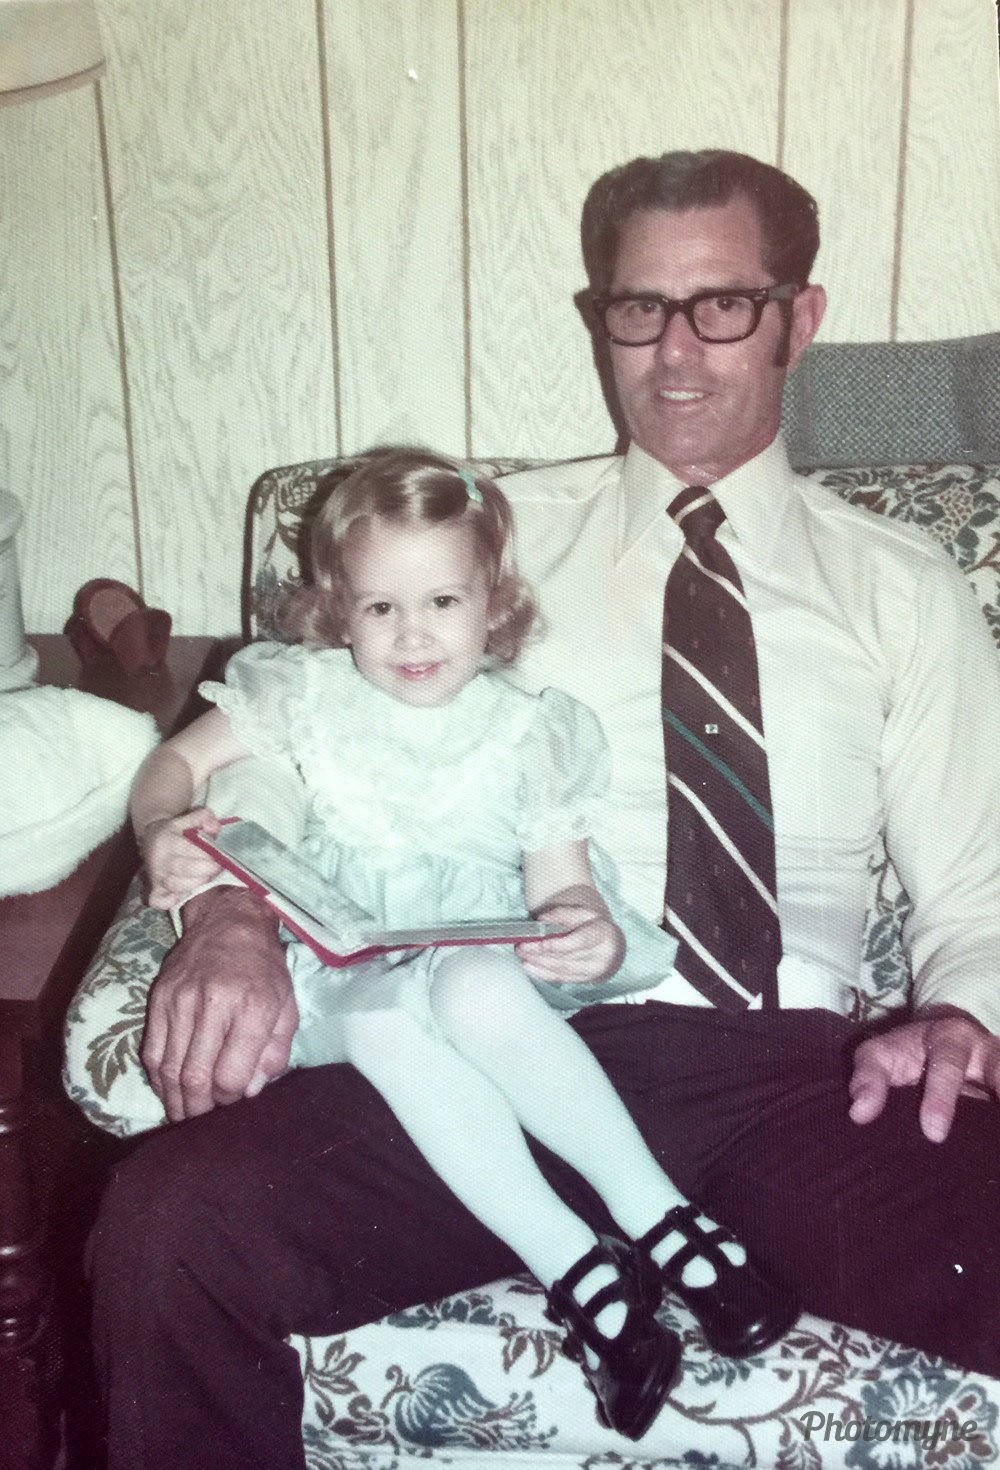 Me and my Grandaddy, Cedar Park, Texas, 1976